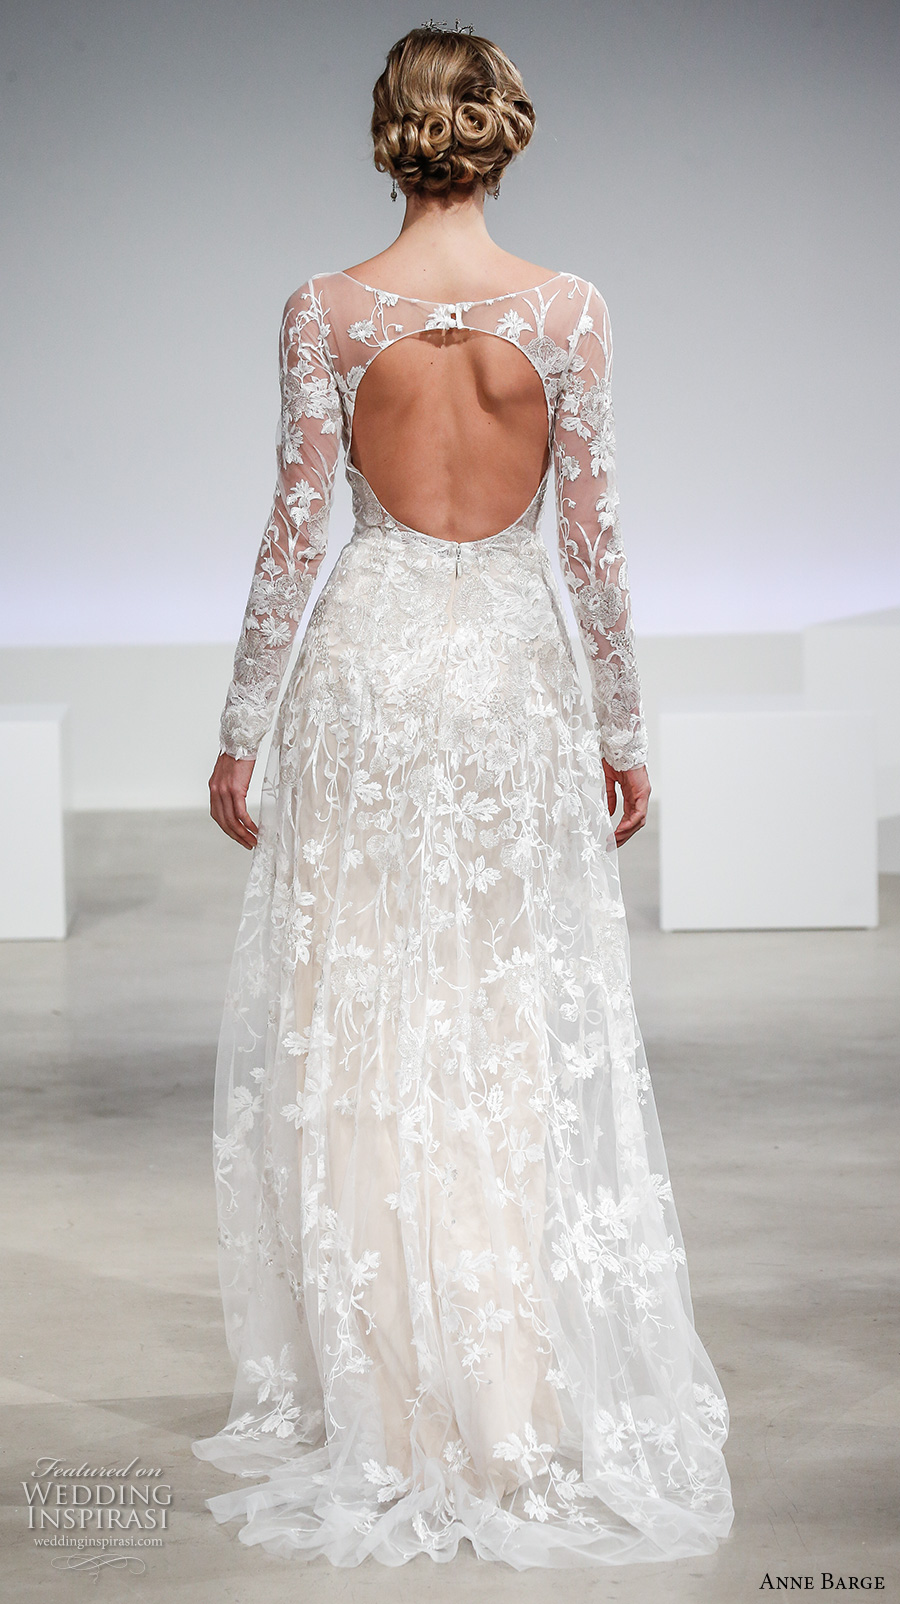 Lace Boat Neck Wedding Dress